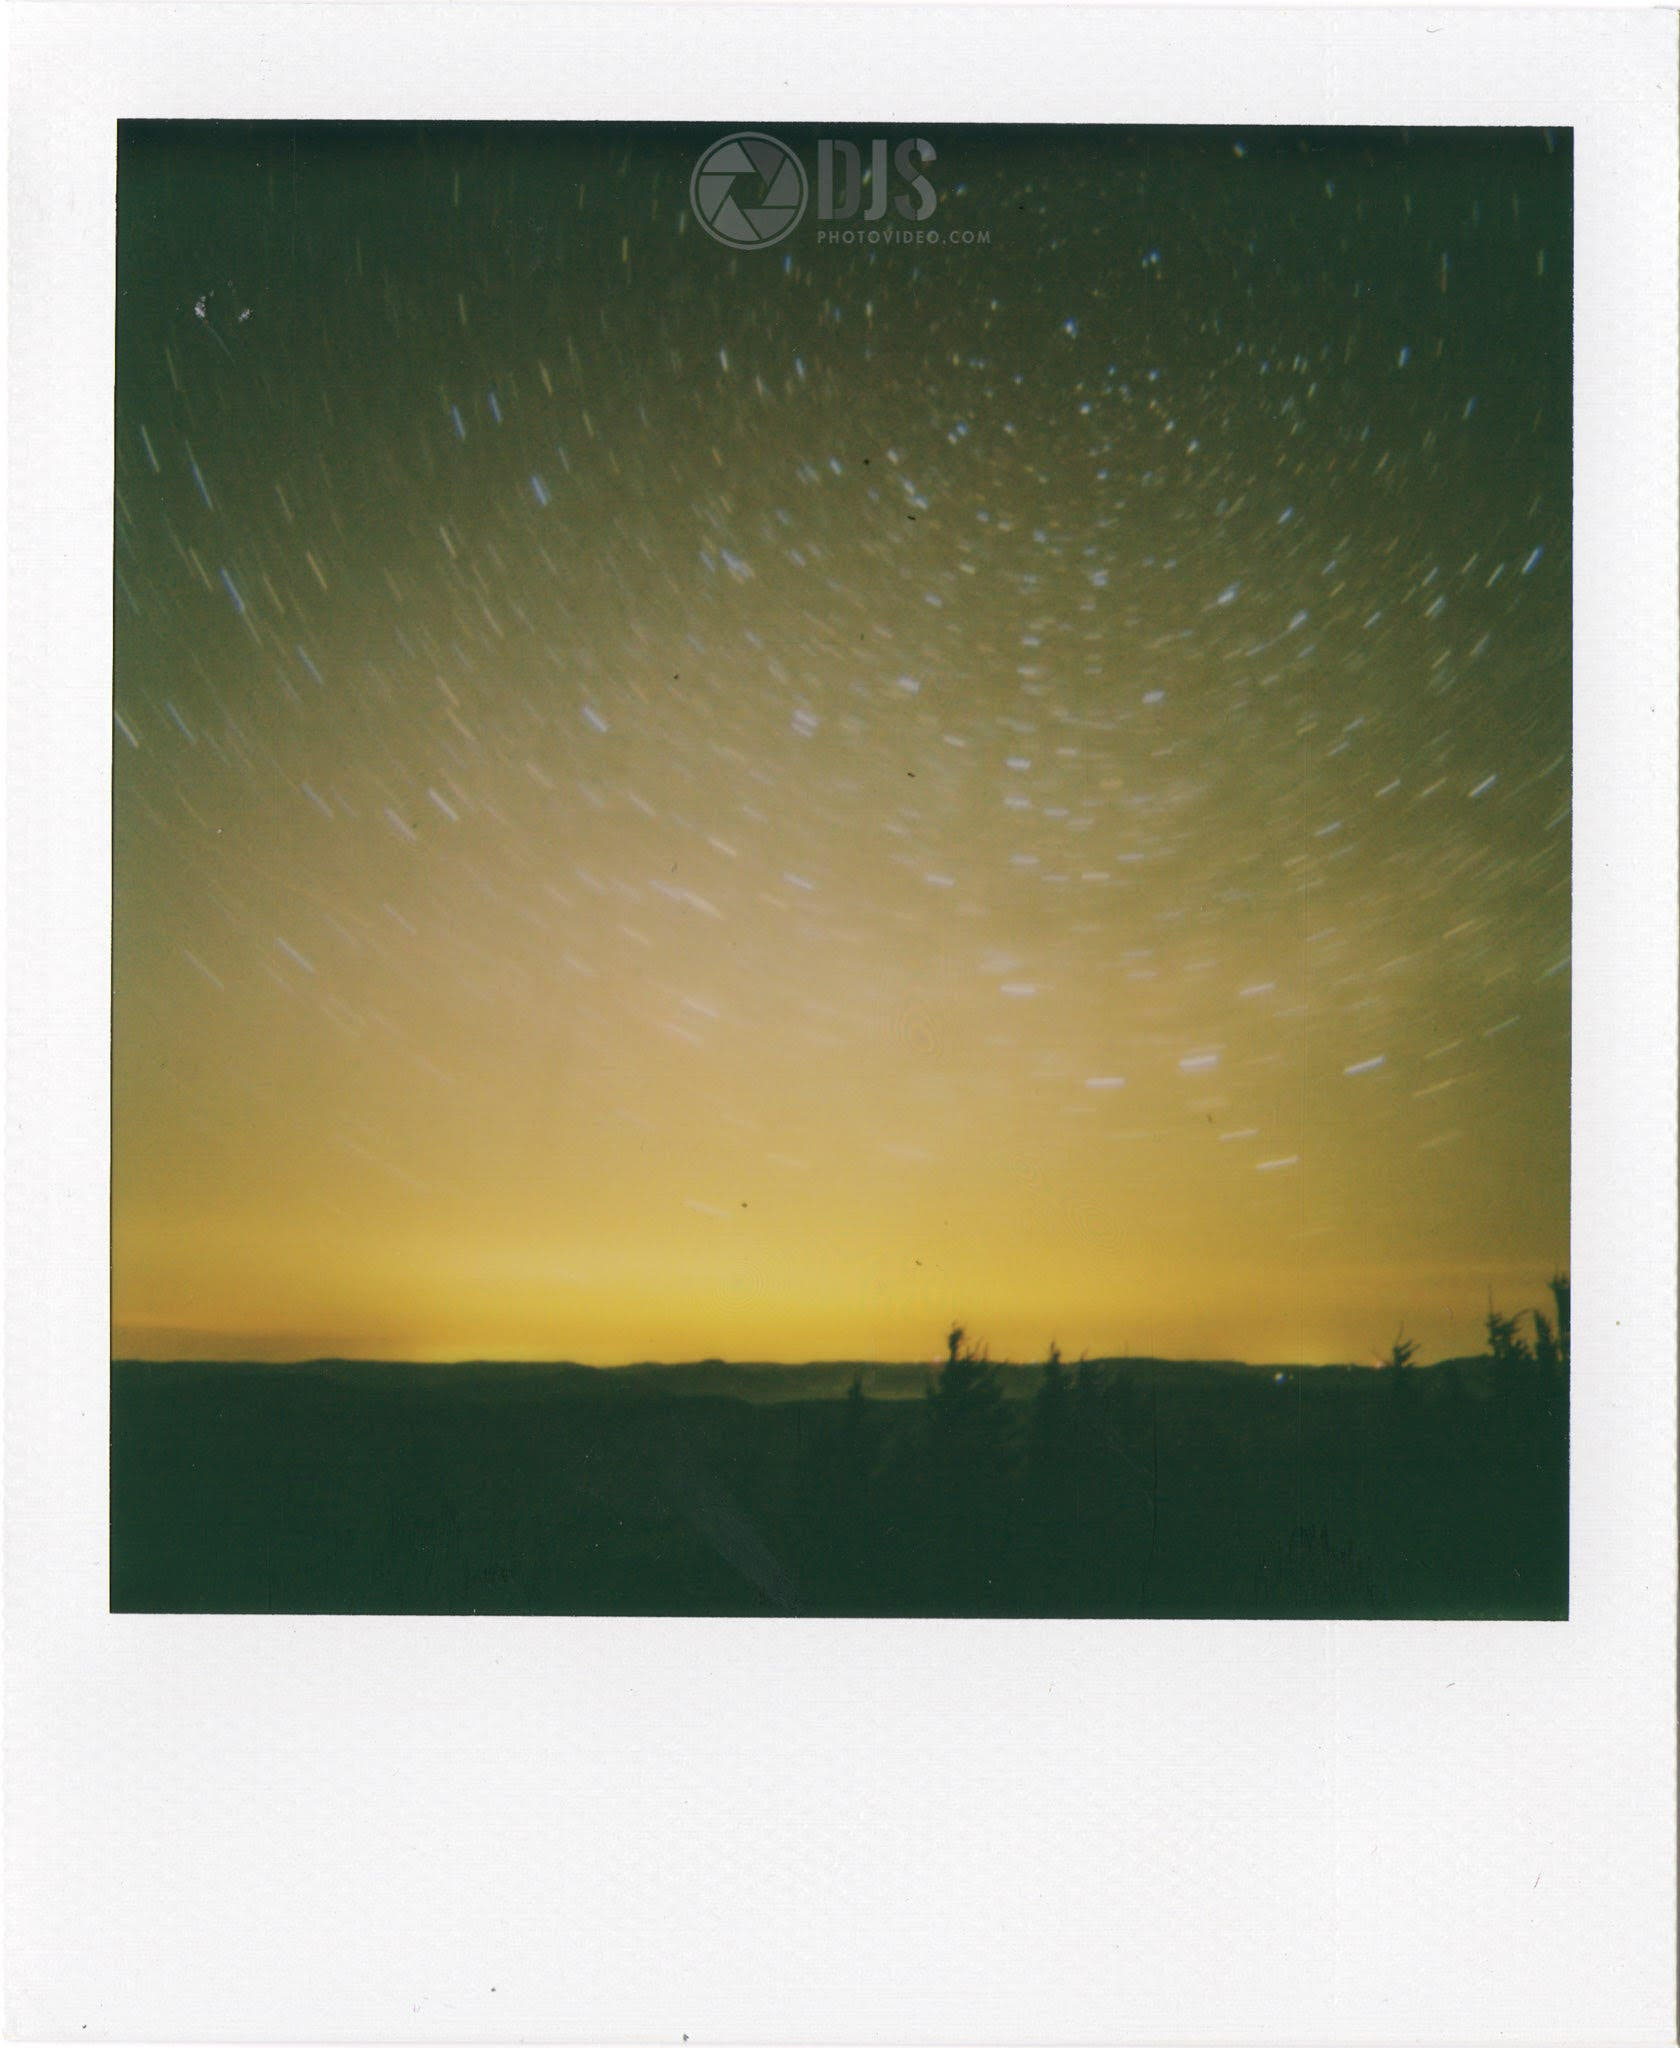 More Stunning Astrophotography Shot Using Polaroid Instant Camera